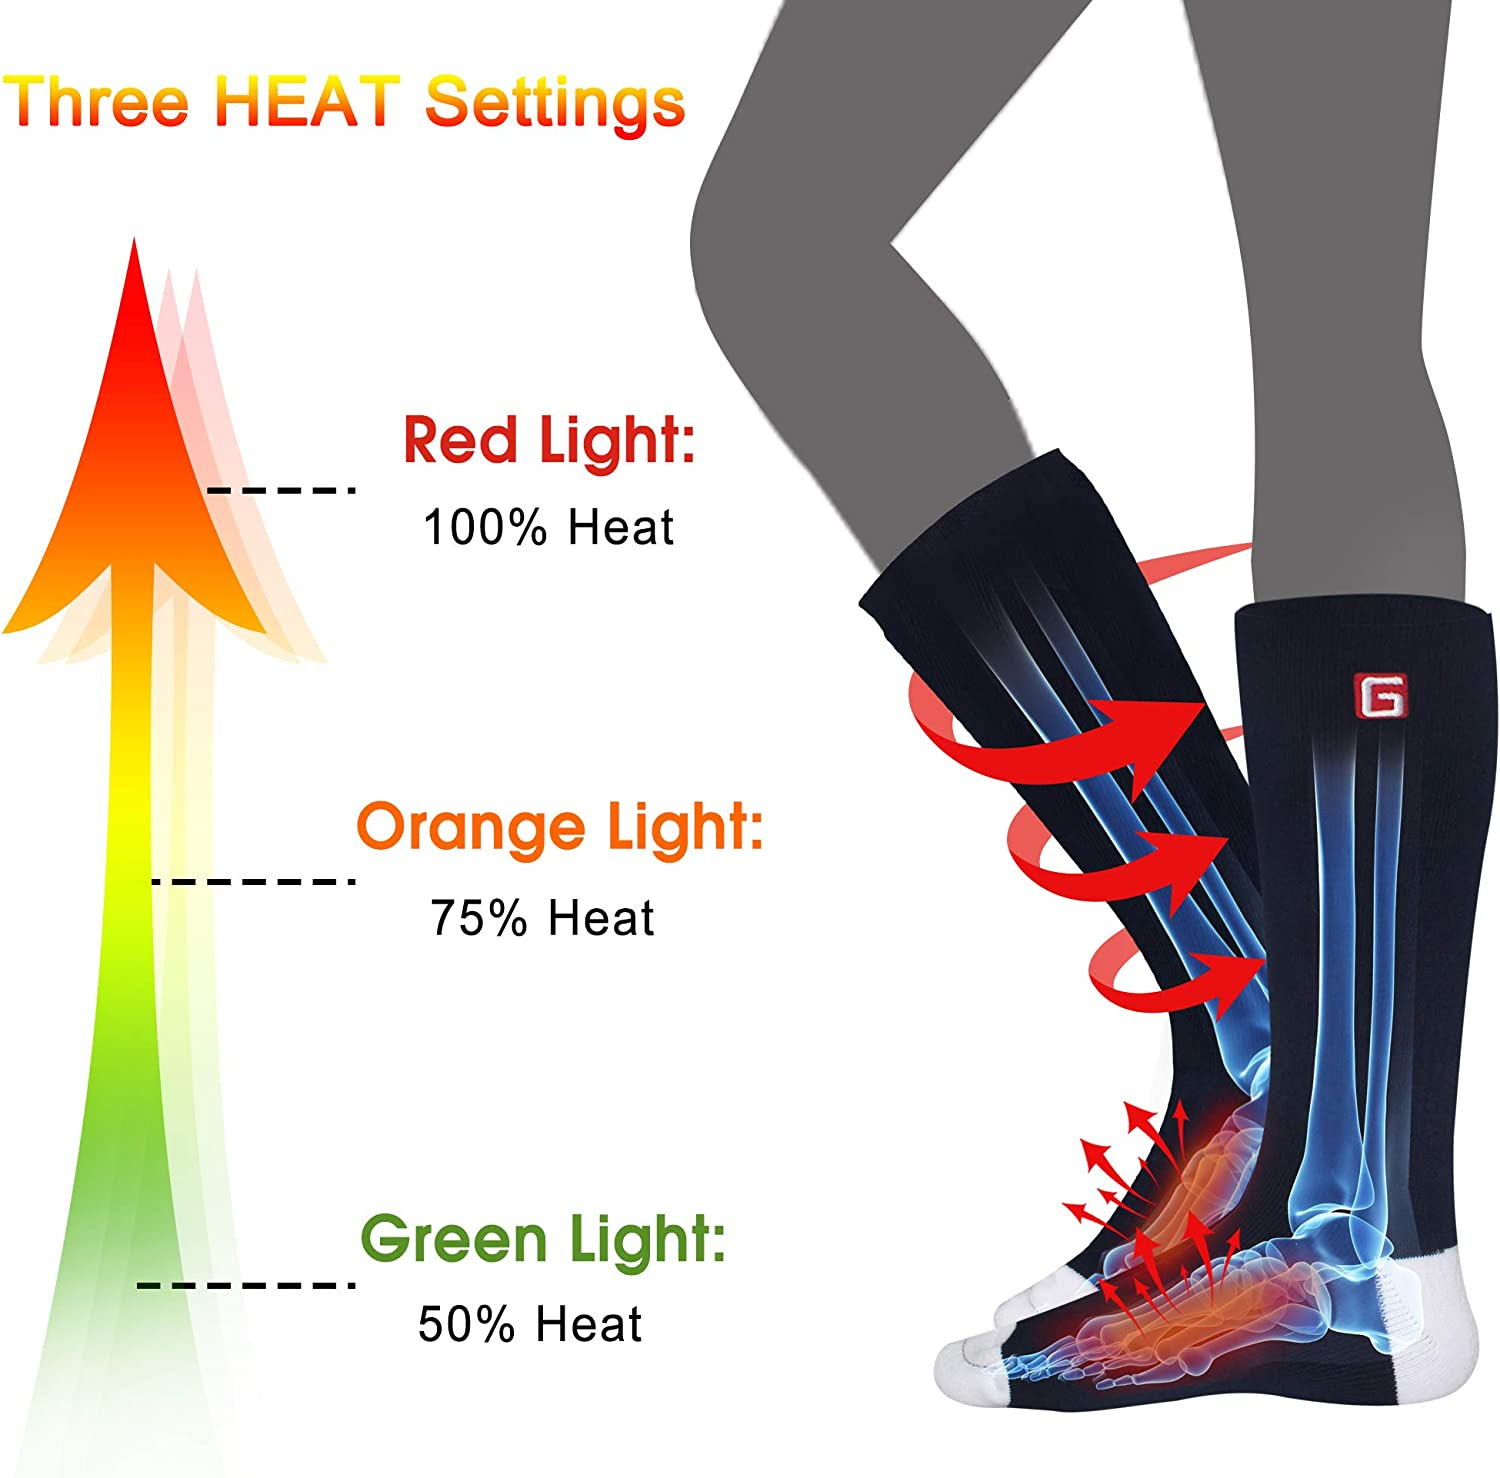 Unisex Electric Heated Socks Winter Warm Rechargeable Battery Powered Heat Sox Kit Men Women Thick Cotton Thermal Heating Footwarmer Sports Outdoor Climbing Hiking Skiing Heating Socks,3 Heat